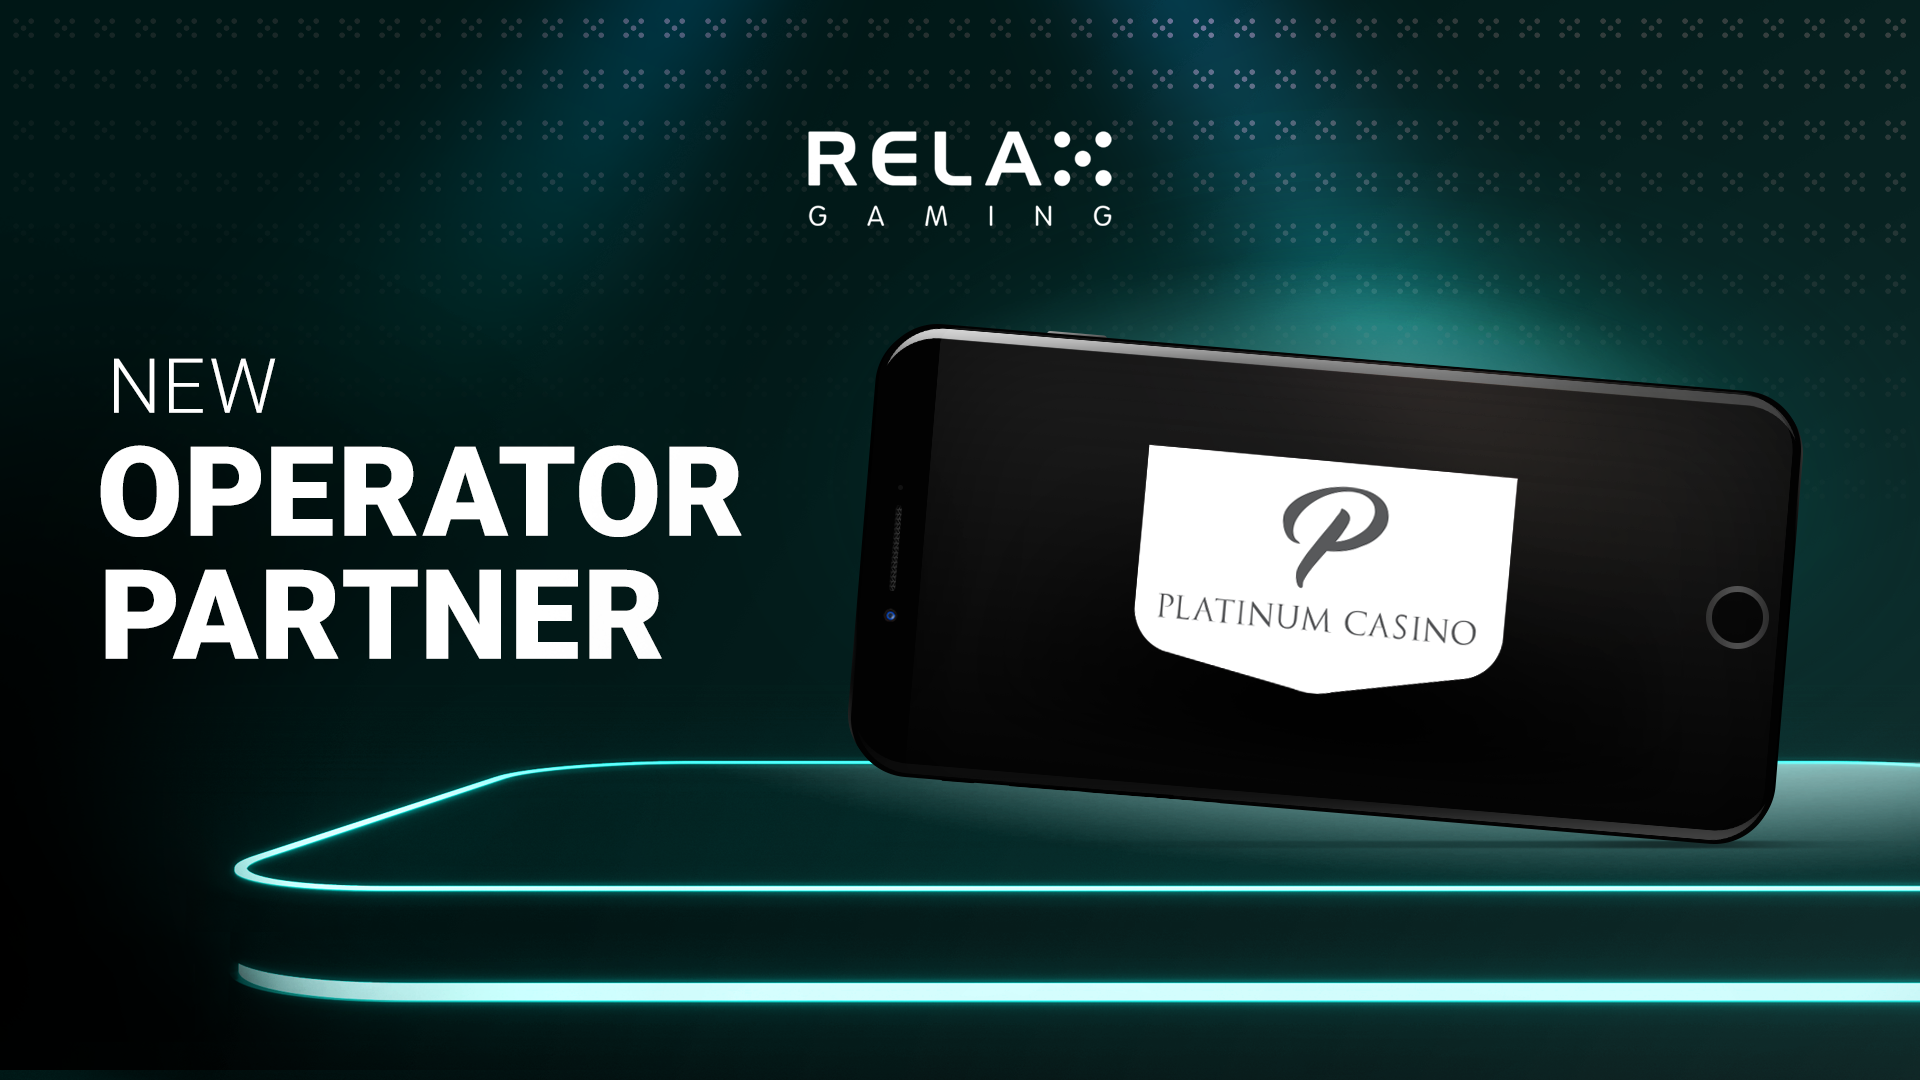 Relax Gaming grows in Romania with Platinum Casino partnership